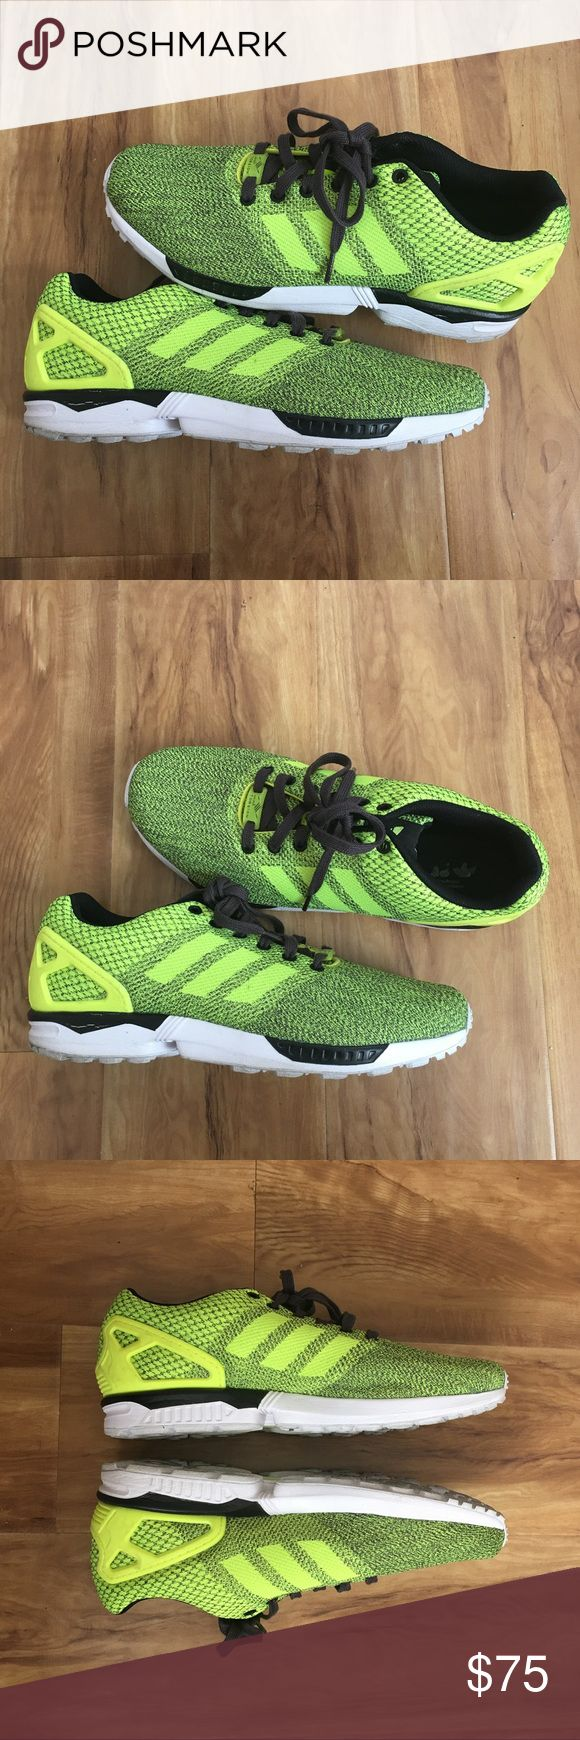 Adidas ZX Flux Weave Torsion Good condition only worn a few times no box adidas Shoes Athletic Shoes